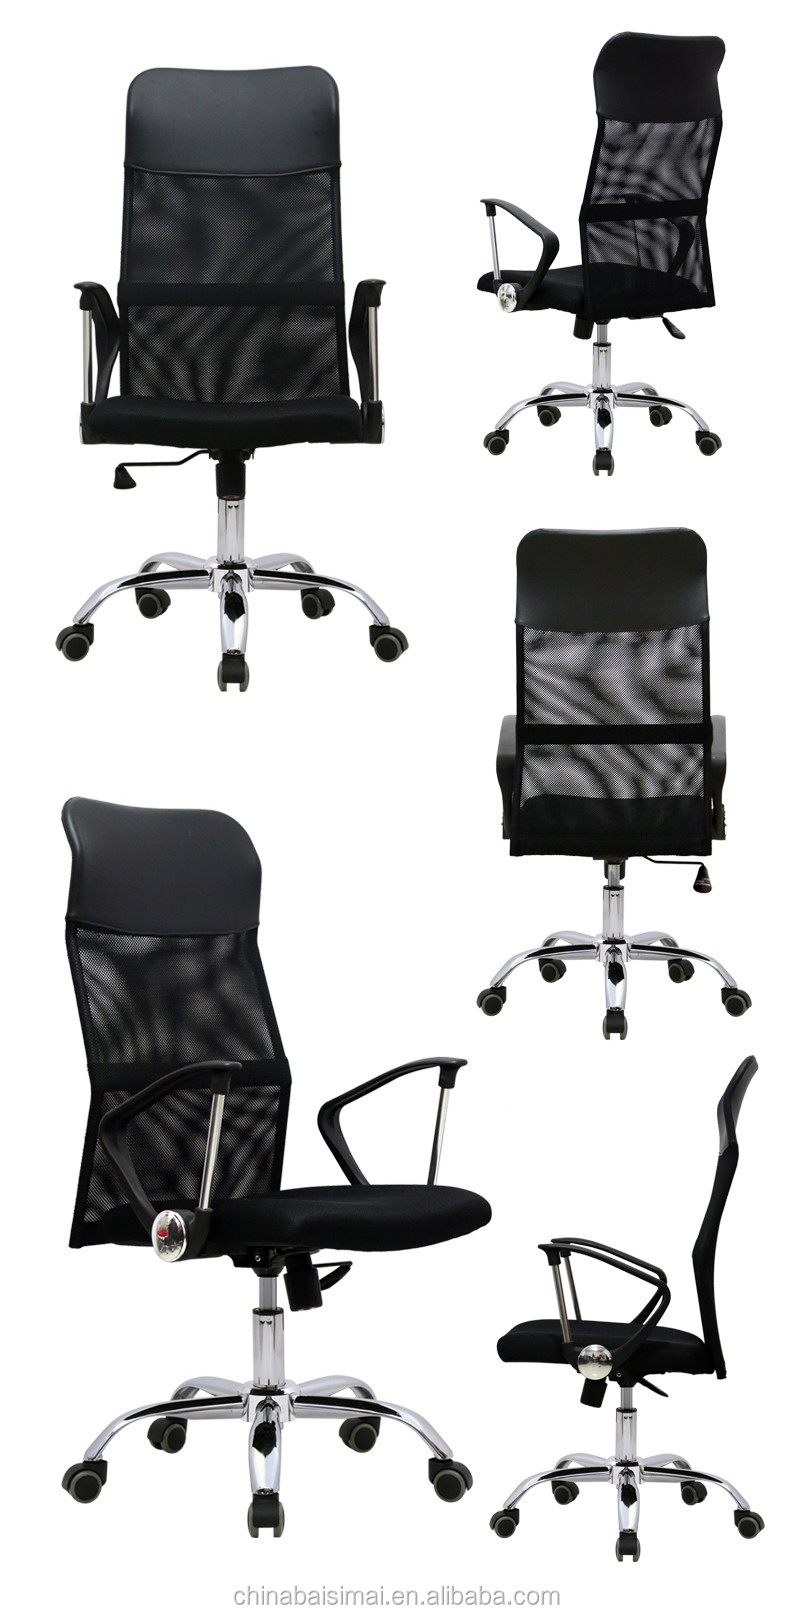 903 Hotsale Good Quality Mesh Office Chair Ergonomic